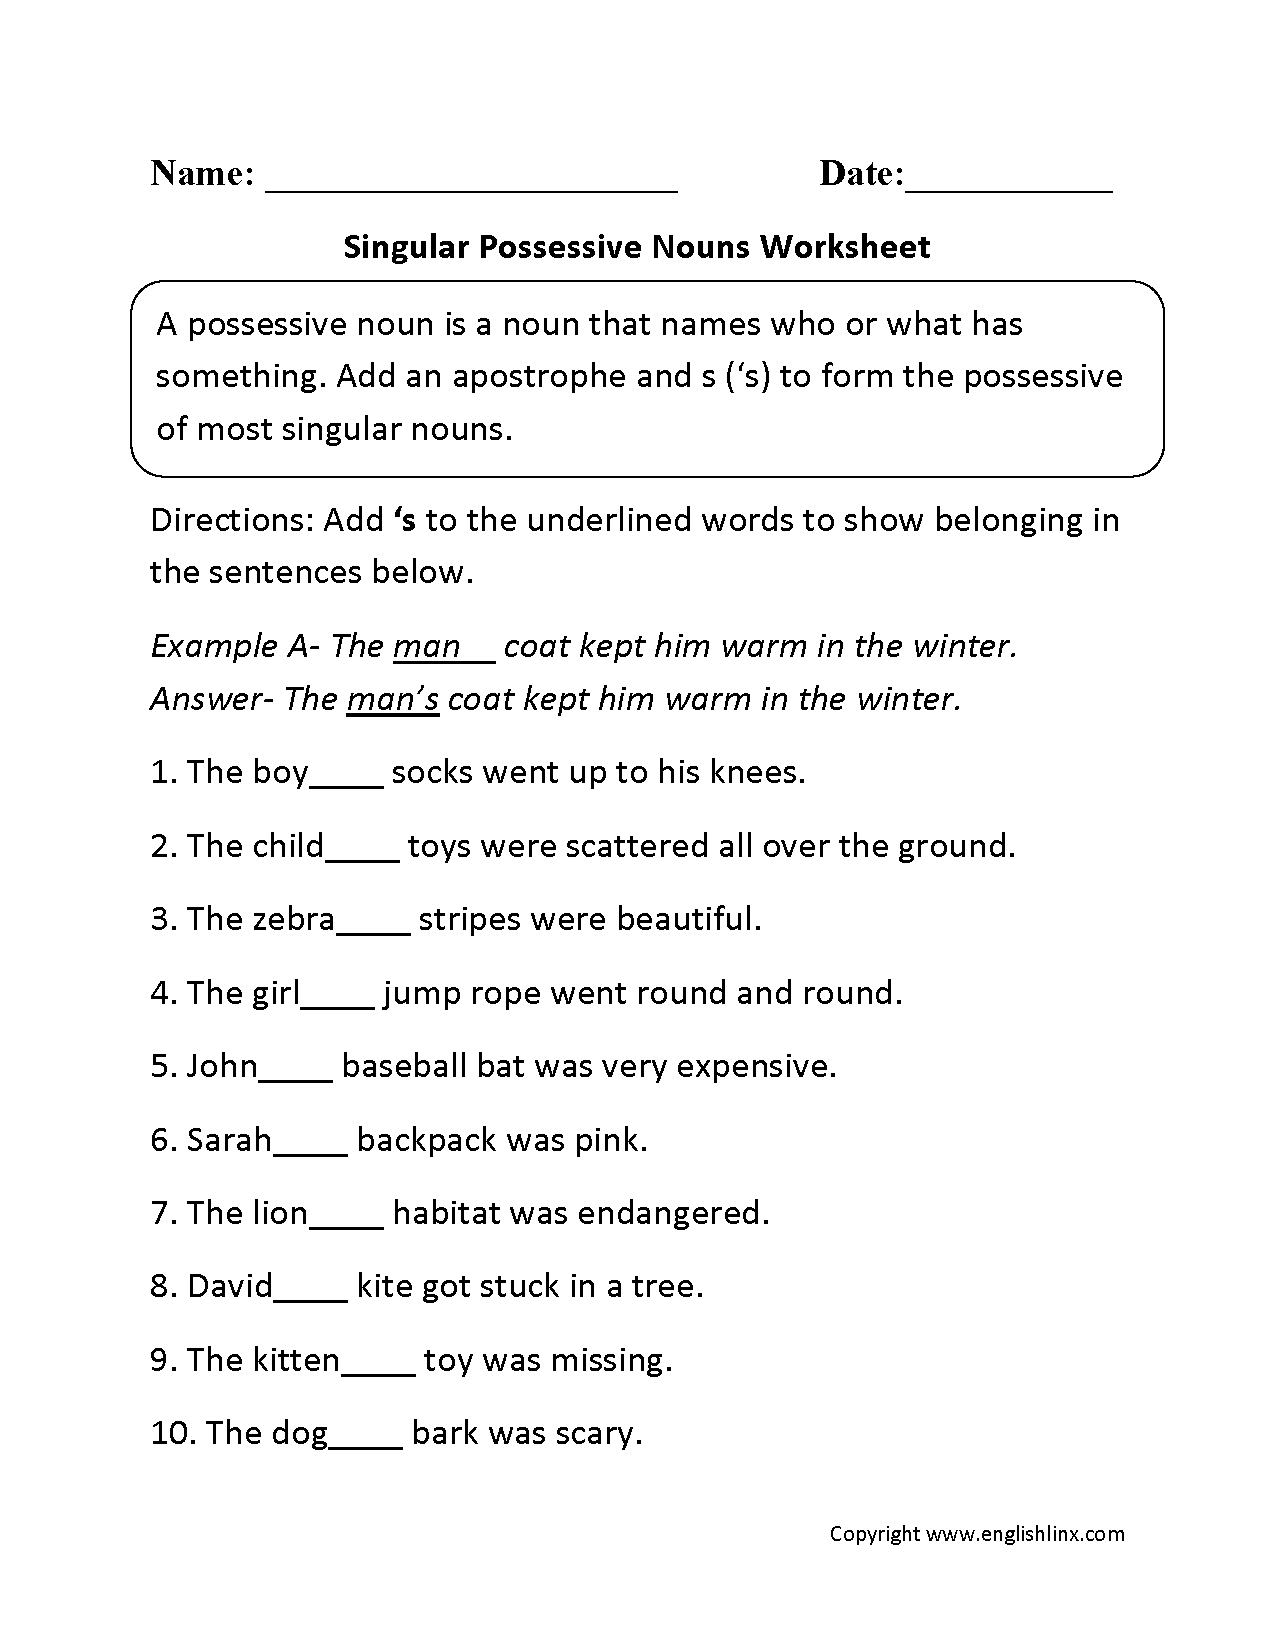 Aldiablosus  Inspiring Nouns Worksheets  Possessive Nouns Worksheets With Fair Possessive Nouns Worksheets With Amazing Integration Worksheet Also Parts Of A Neuron Worksheet In Addition Unknown Angles Worksheet And Aa Fifth Step Worksheet As Well As Third Grade Equivalent Fractions Worksheet Additionally Rosa Parks Worksheets For Kindergarten From Englishlinxcom With Aldiablosus  Fair Nouns Worksheets  Possessive Nouns Worksheets With Amazing Possessive Nouns Worksheets And Inspiring Integration Worksheet Also Parts Of A Neuron Worksheet In Addition Unknown Angles Worksheet From Englishlinxcom